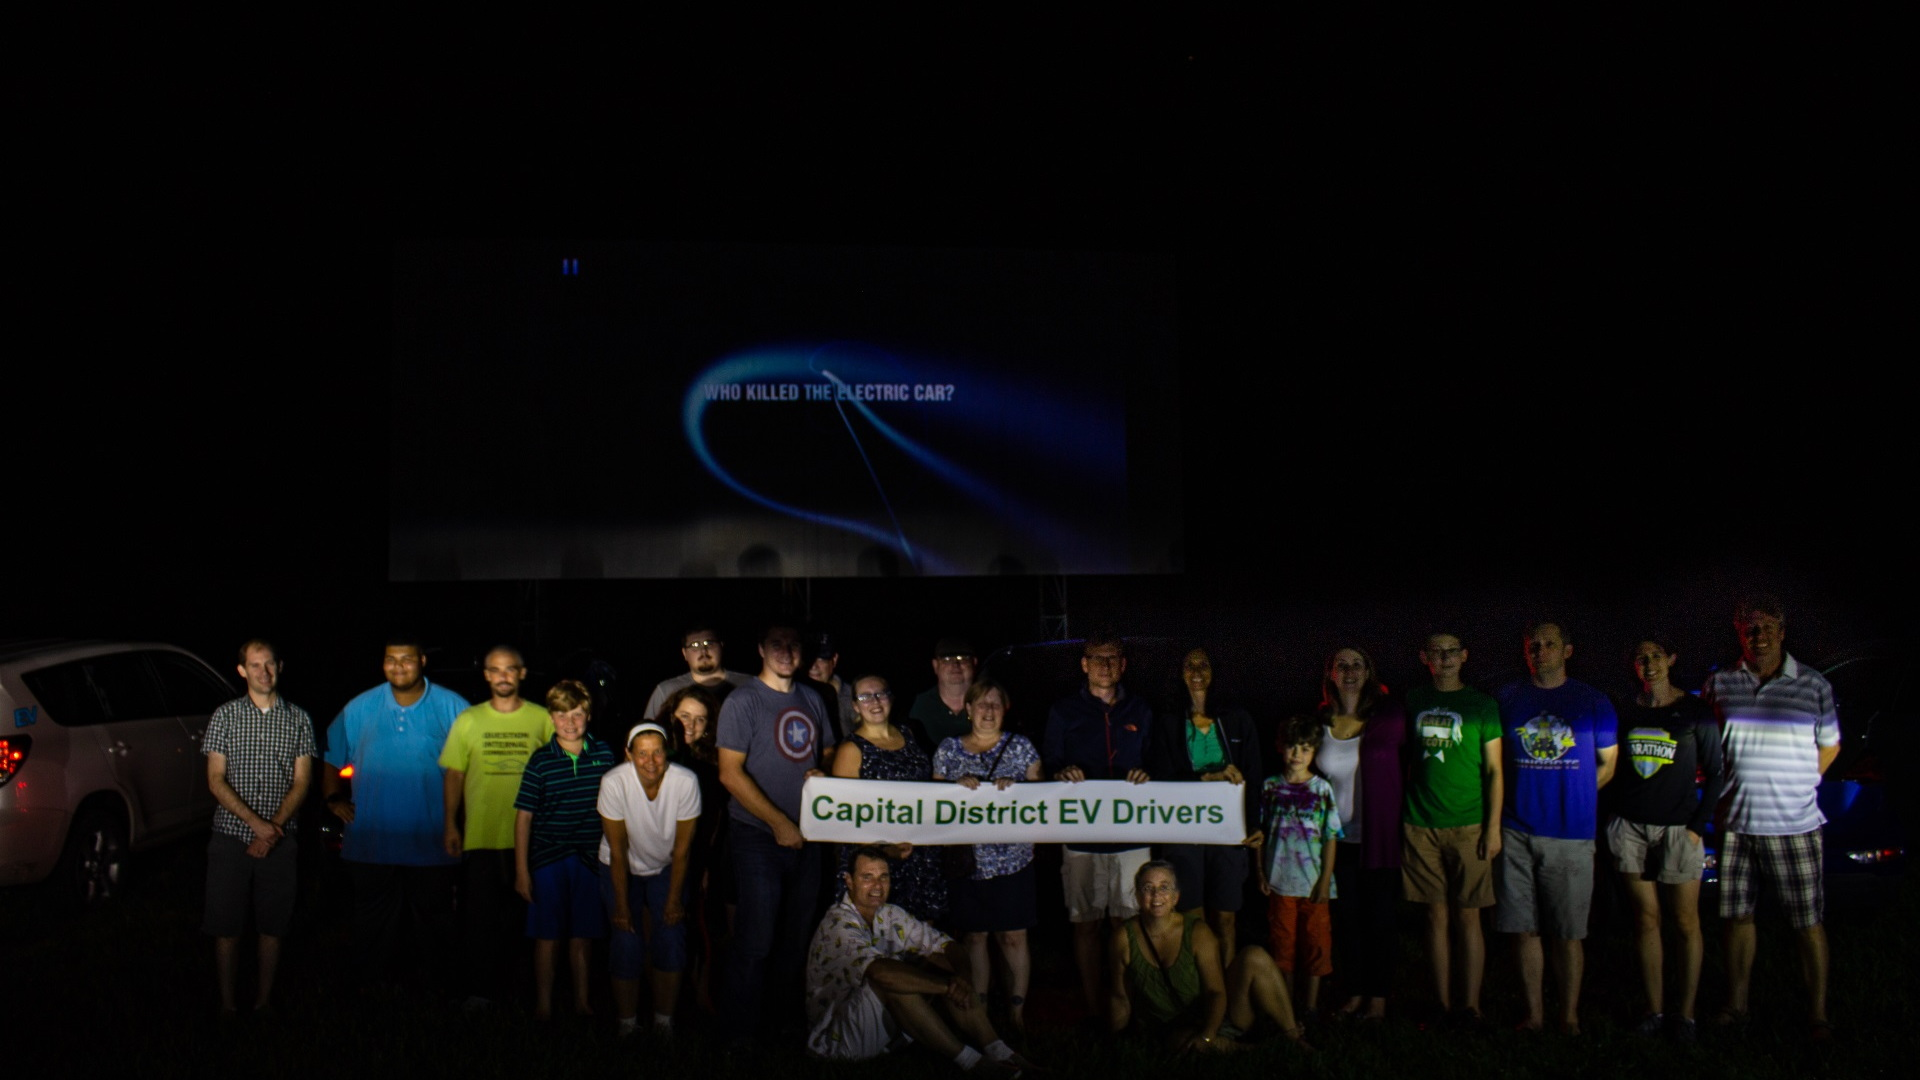 Capital District EV Drivers drive-in movie night in Greenville, NY [CREDIT: Erik Smits]